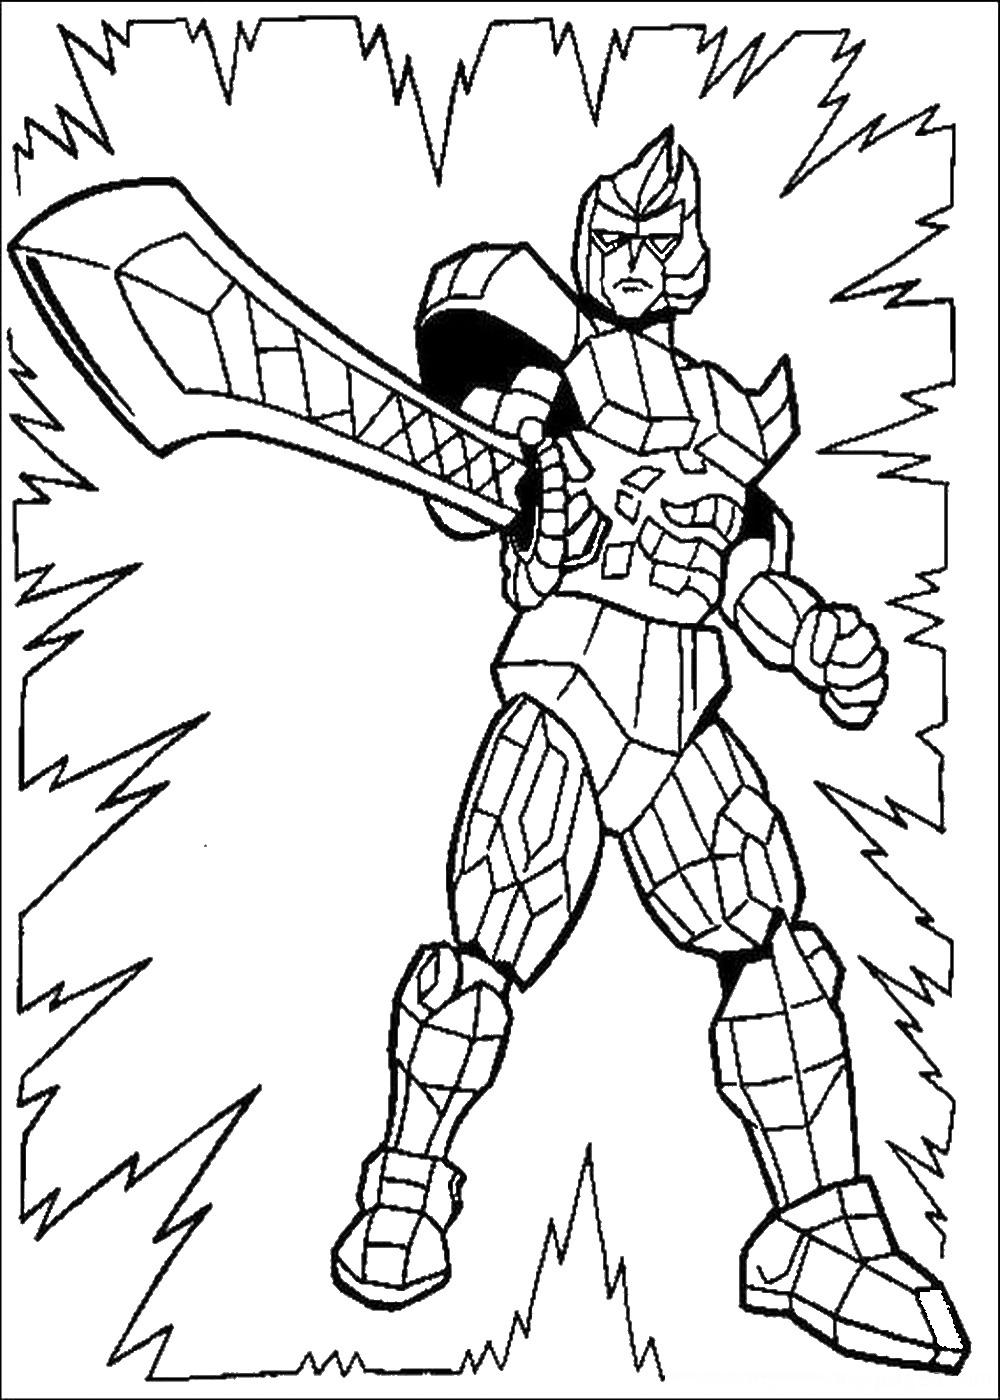 power rangers movie coloring pages power rangers 2017 coloring pages 03 movie power coloring rangers pages